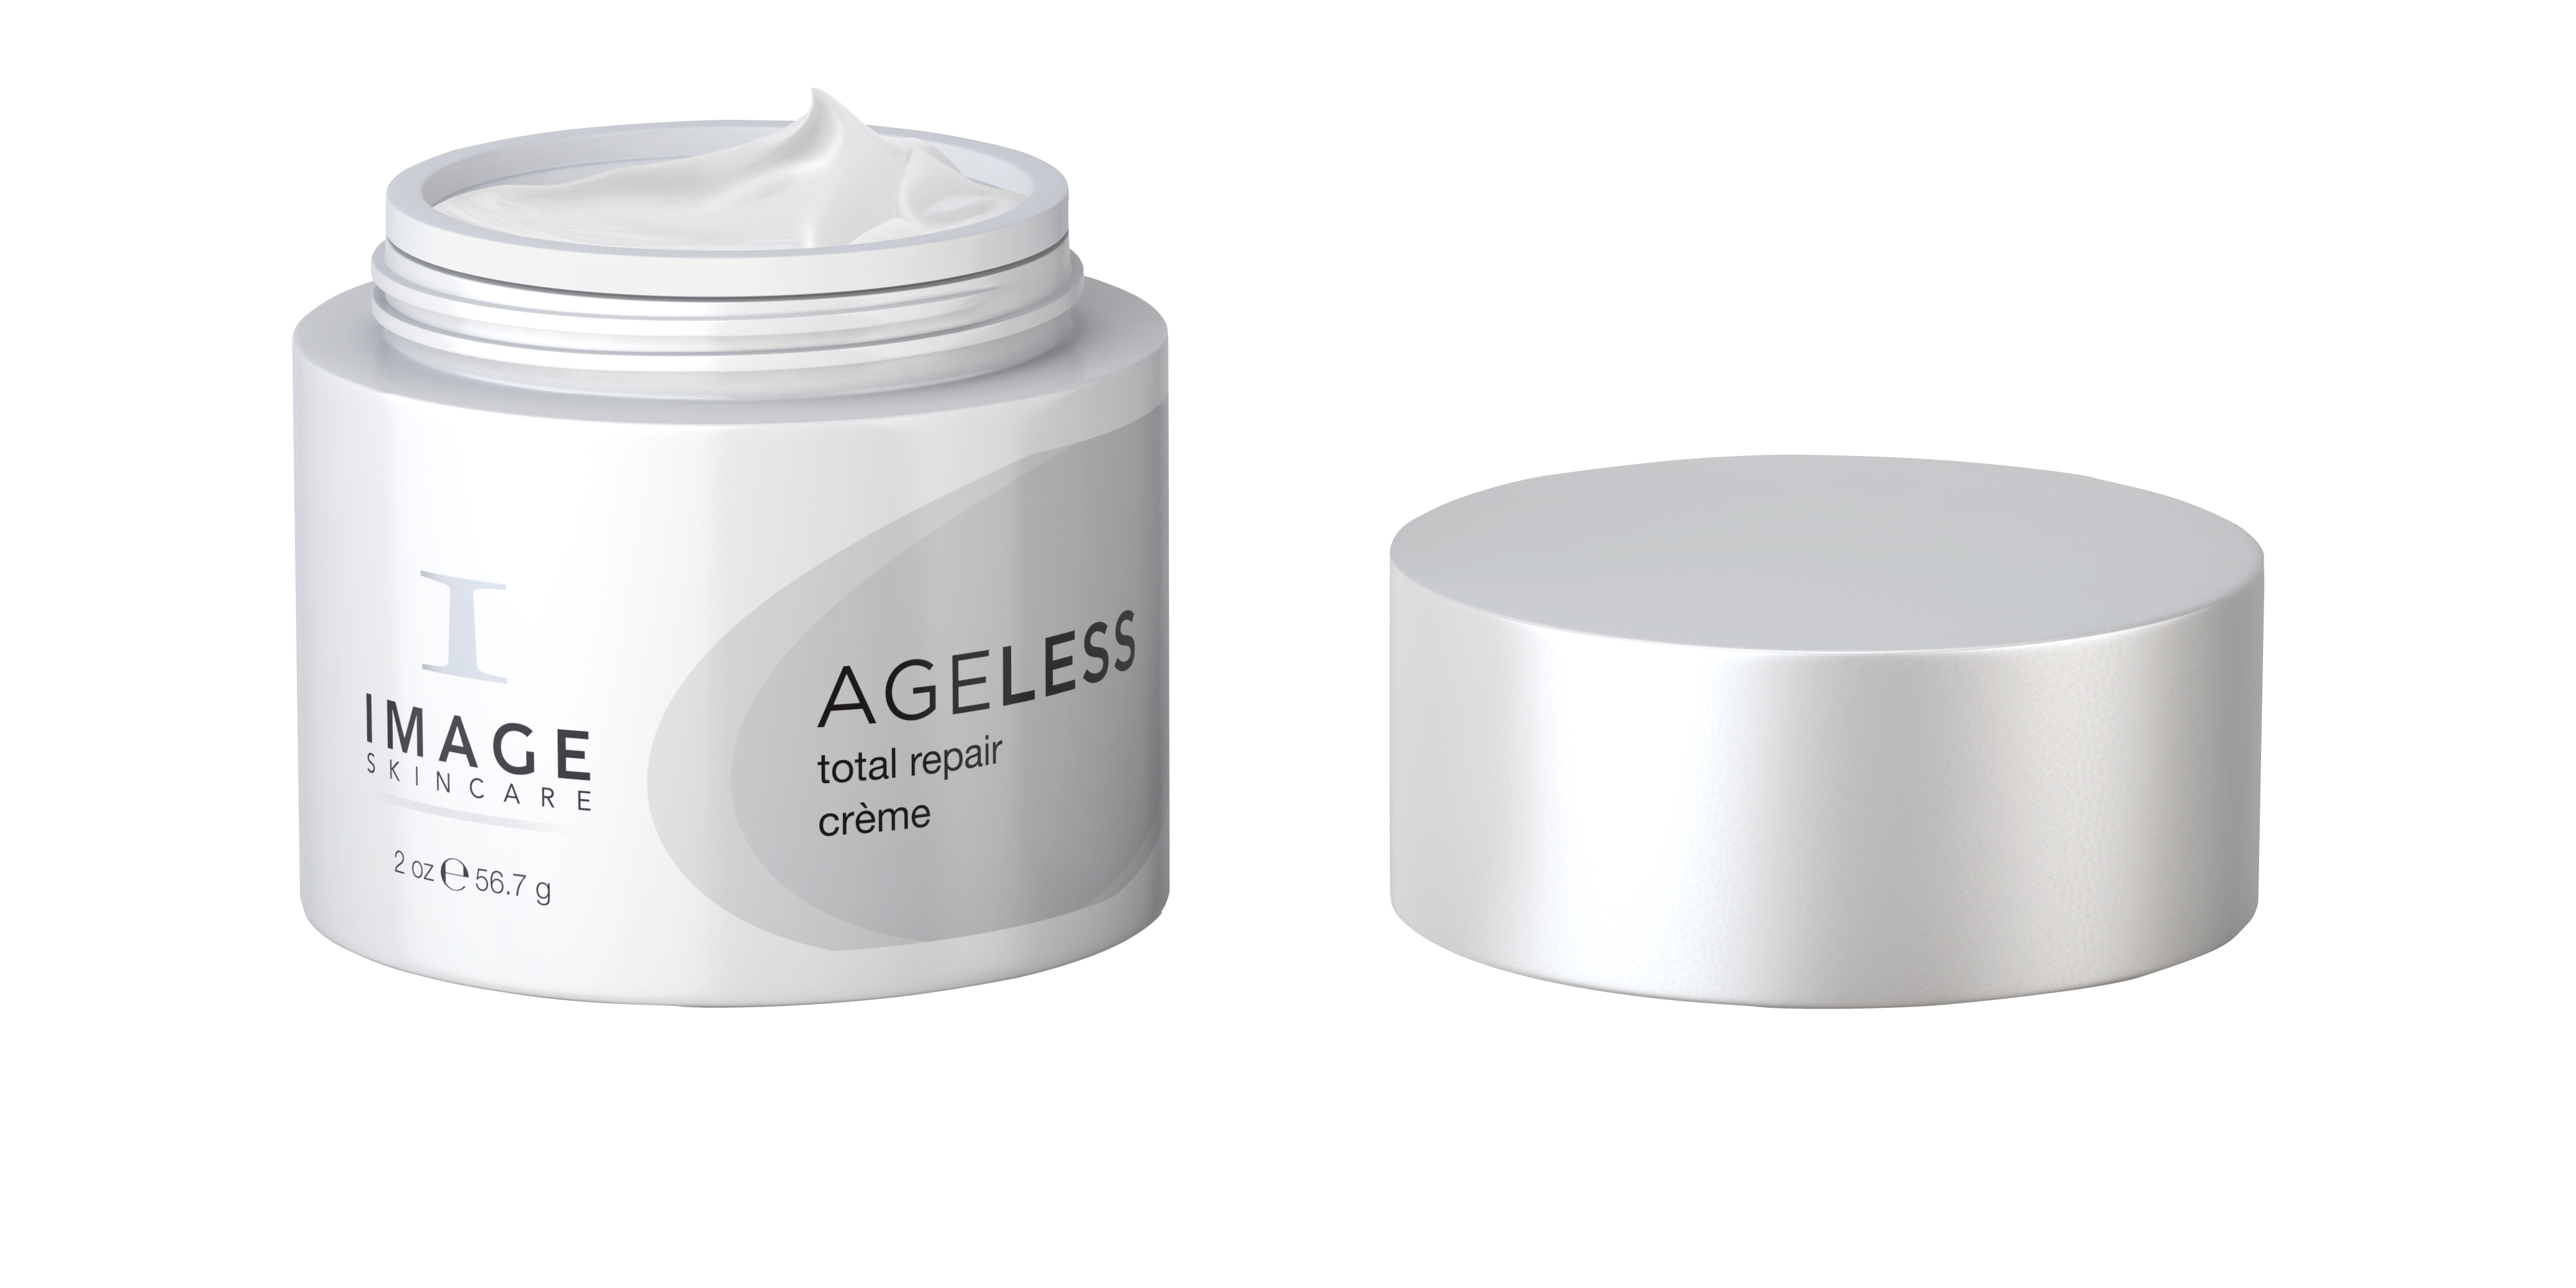 Ageless Total Repair Cremeglamour Shot Skin Zen